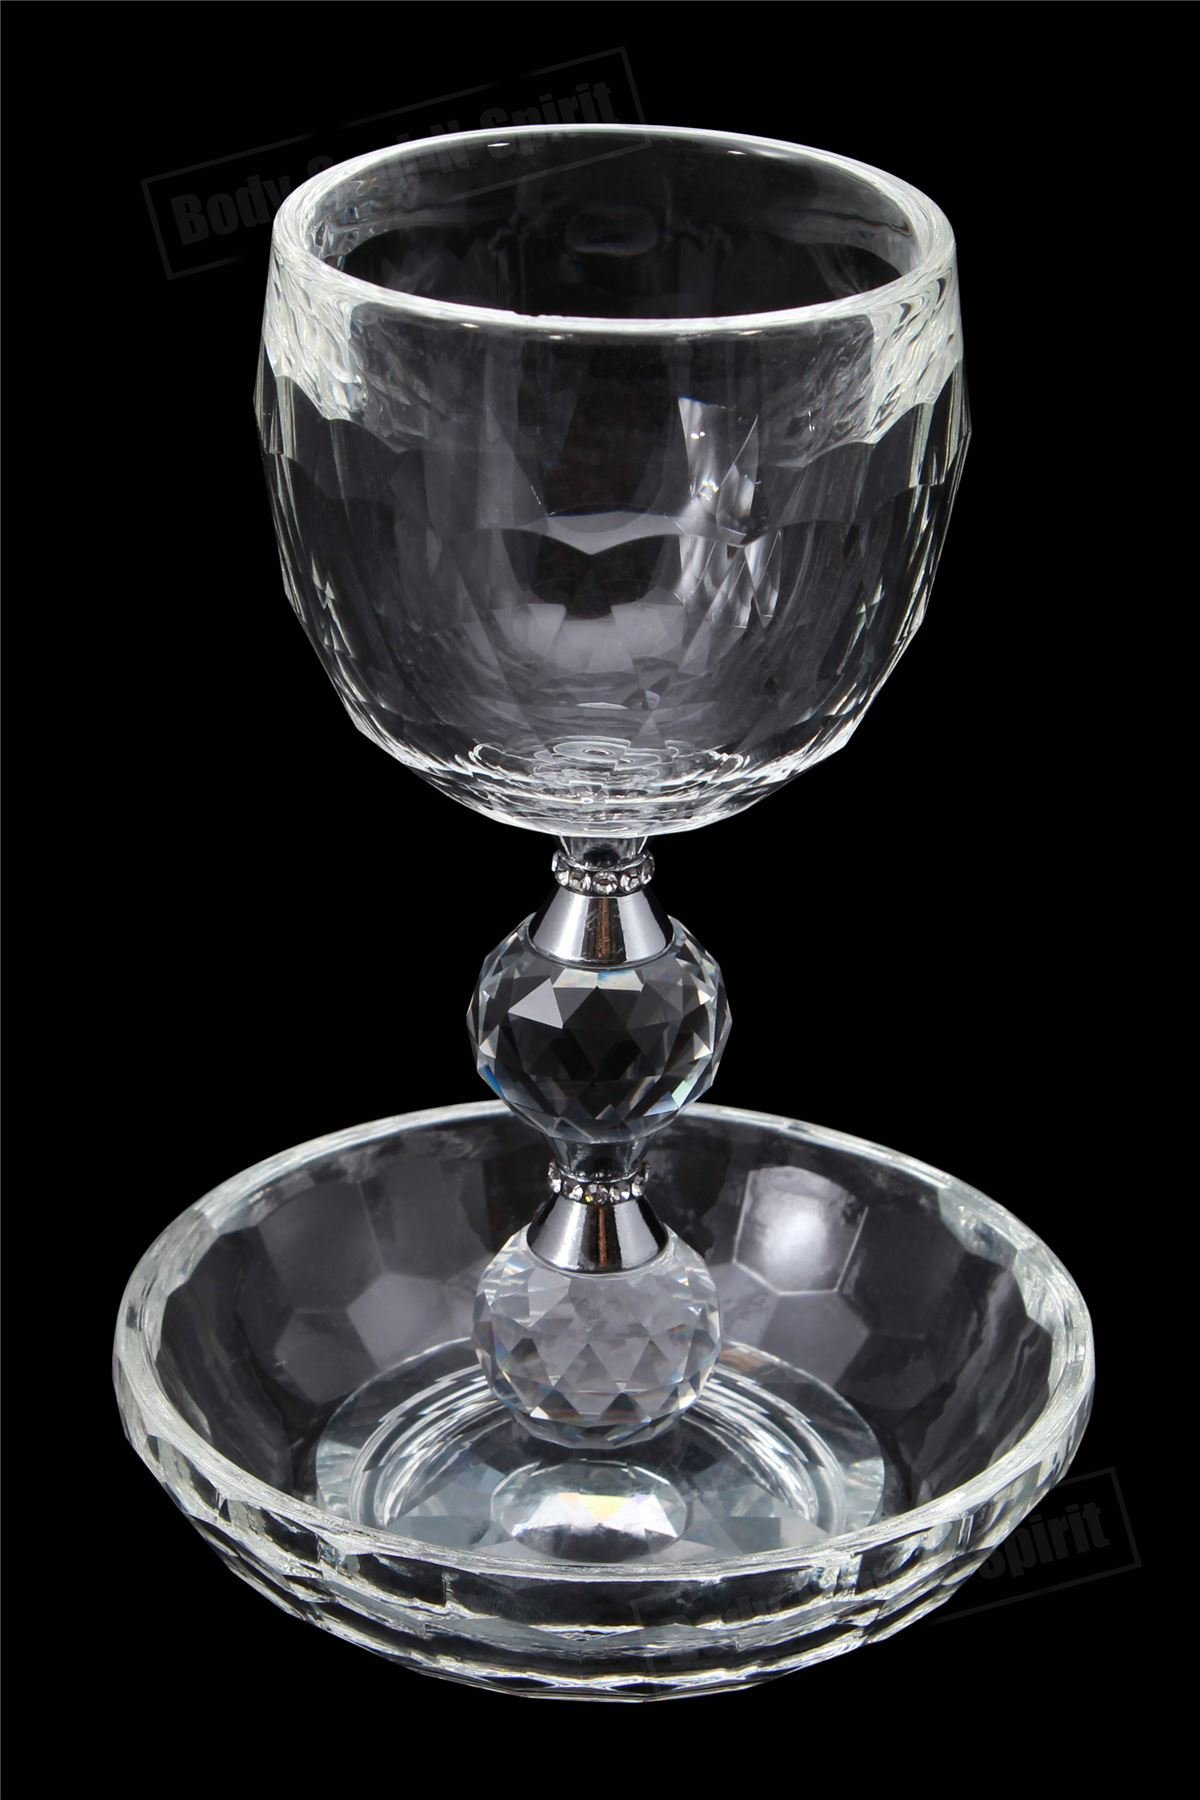 Crystal SHABBAT HOLIDAY Wine Kiddush Cup Goblet Israel Holy Jewish Judaica